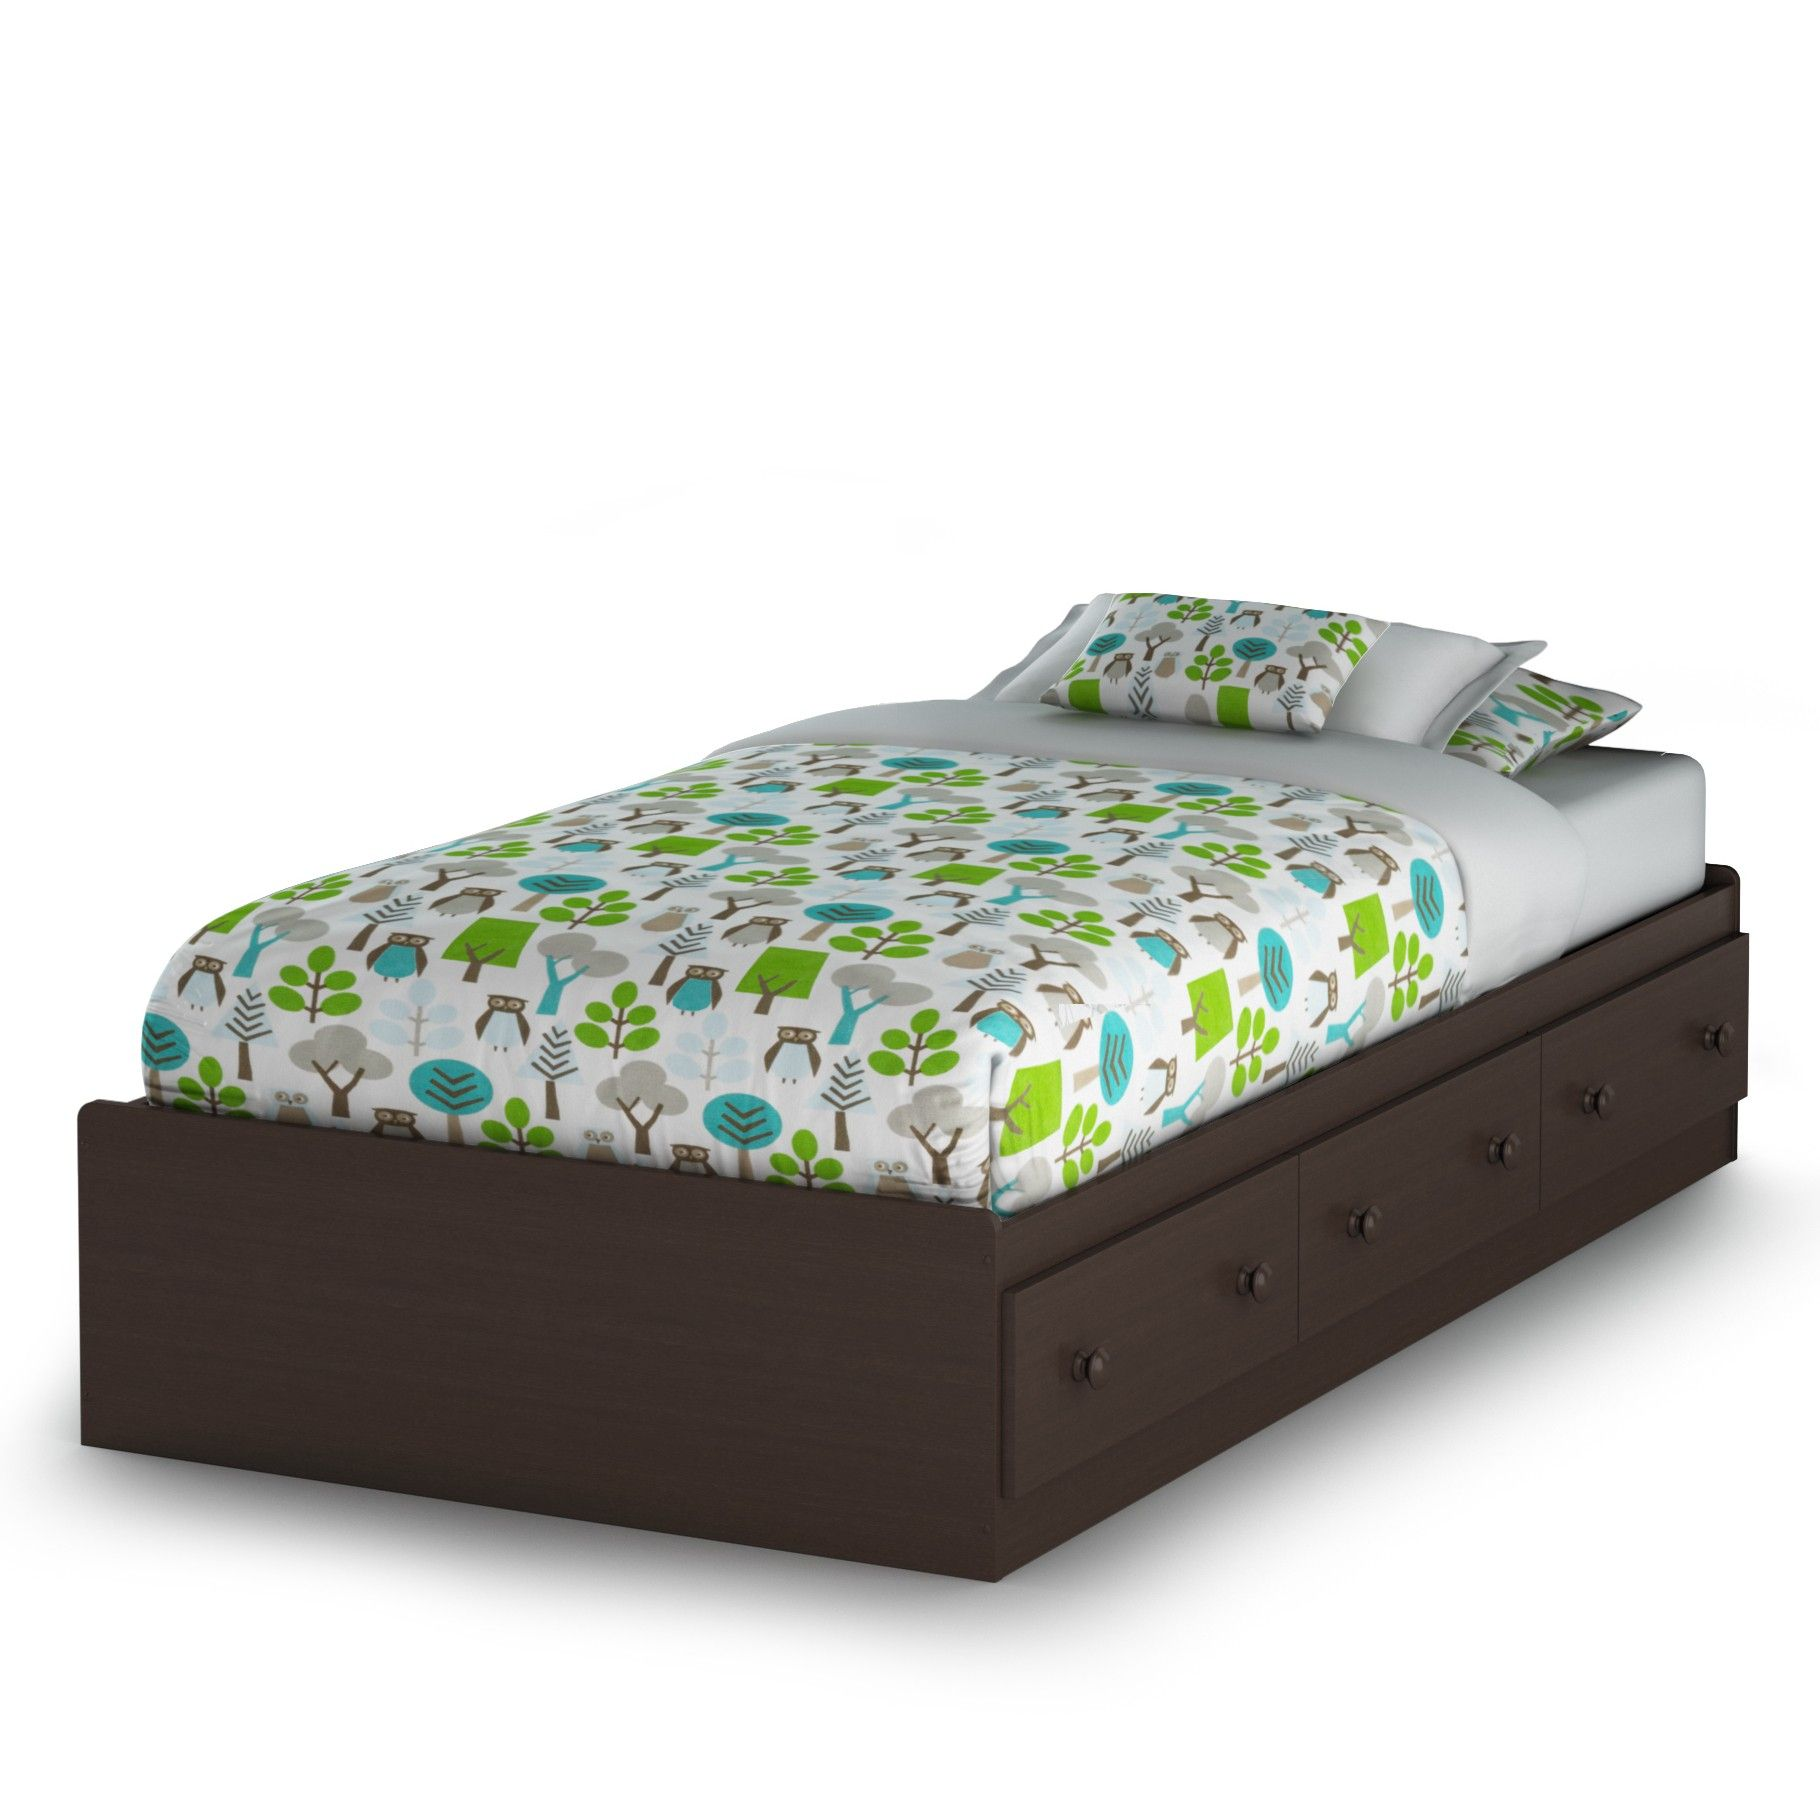 South Shore Summer Breeze Chocolate Mates Bed Box Size: Full 3219211   Kids  Beds